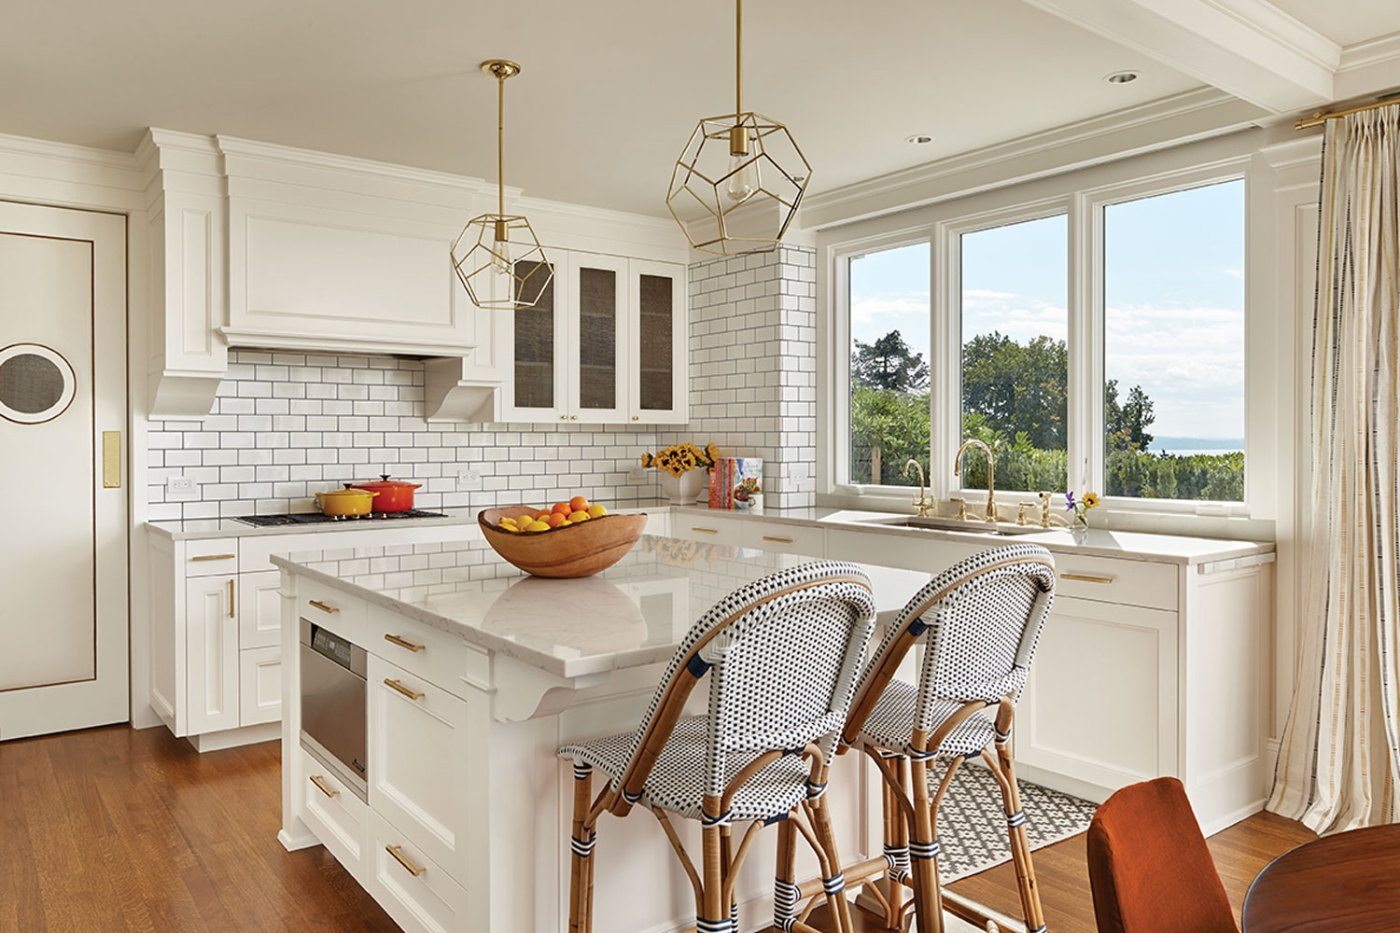 Transitional, white tile and marble kitchen in Queen Anne home